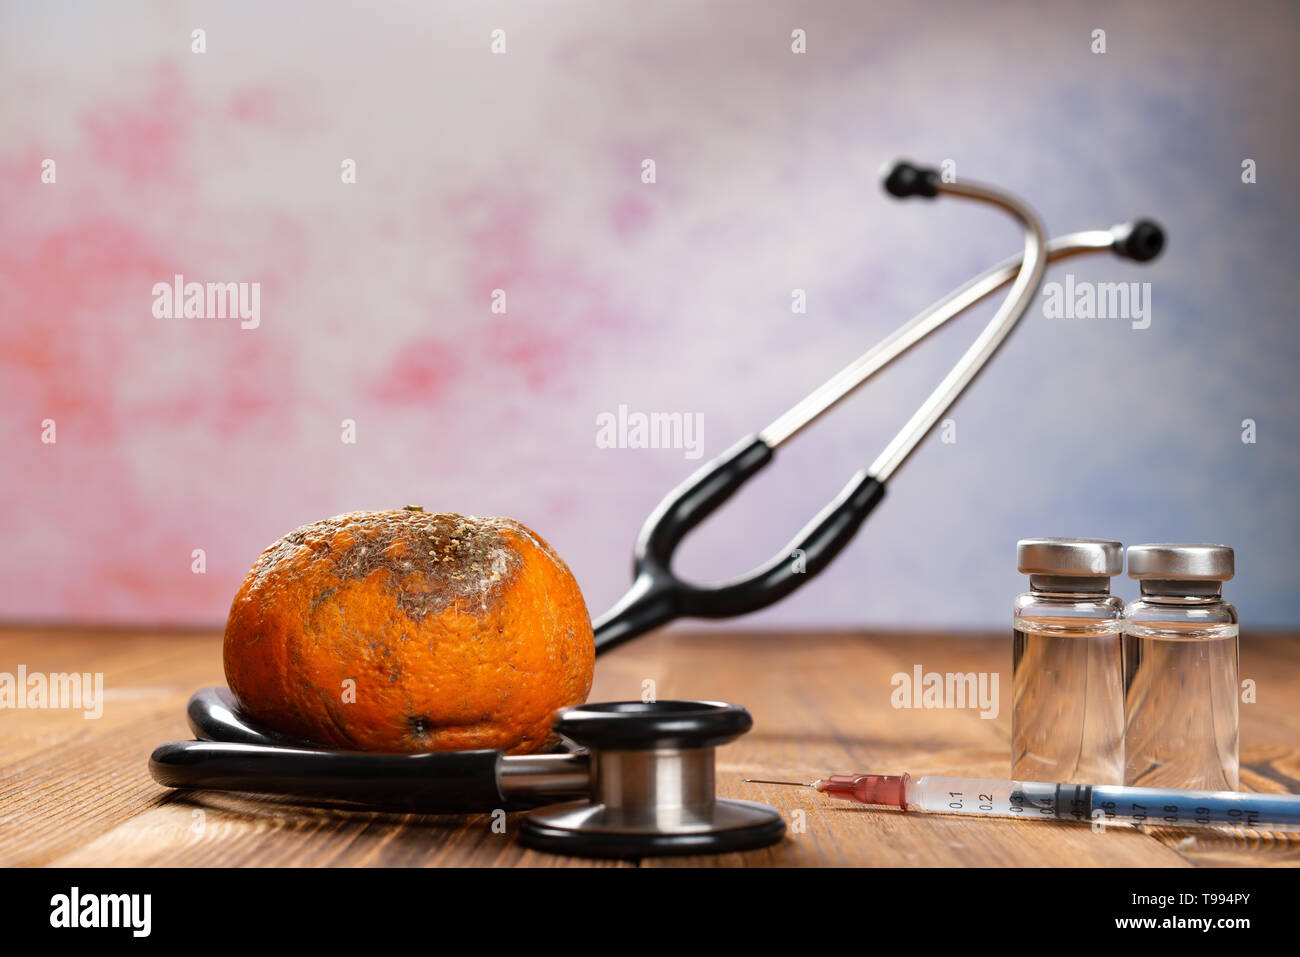 rotten orange surrounded by stethoscope with syringe and bottles of vaccine nearby - Stock Image